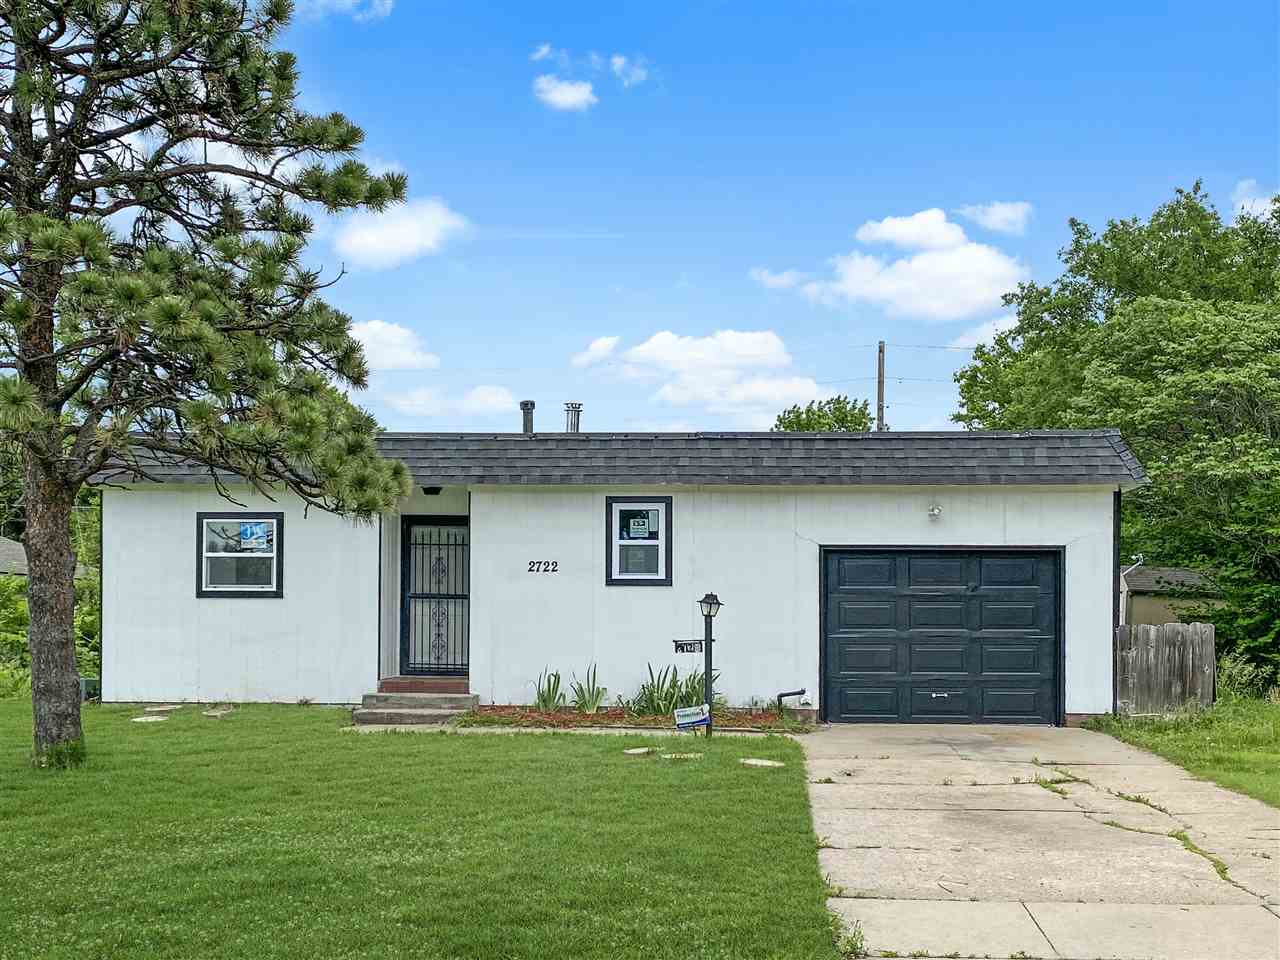 Over 1500 square feet of living space in this 3 bedroom 1.5 bath home with finished basement. This h